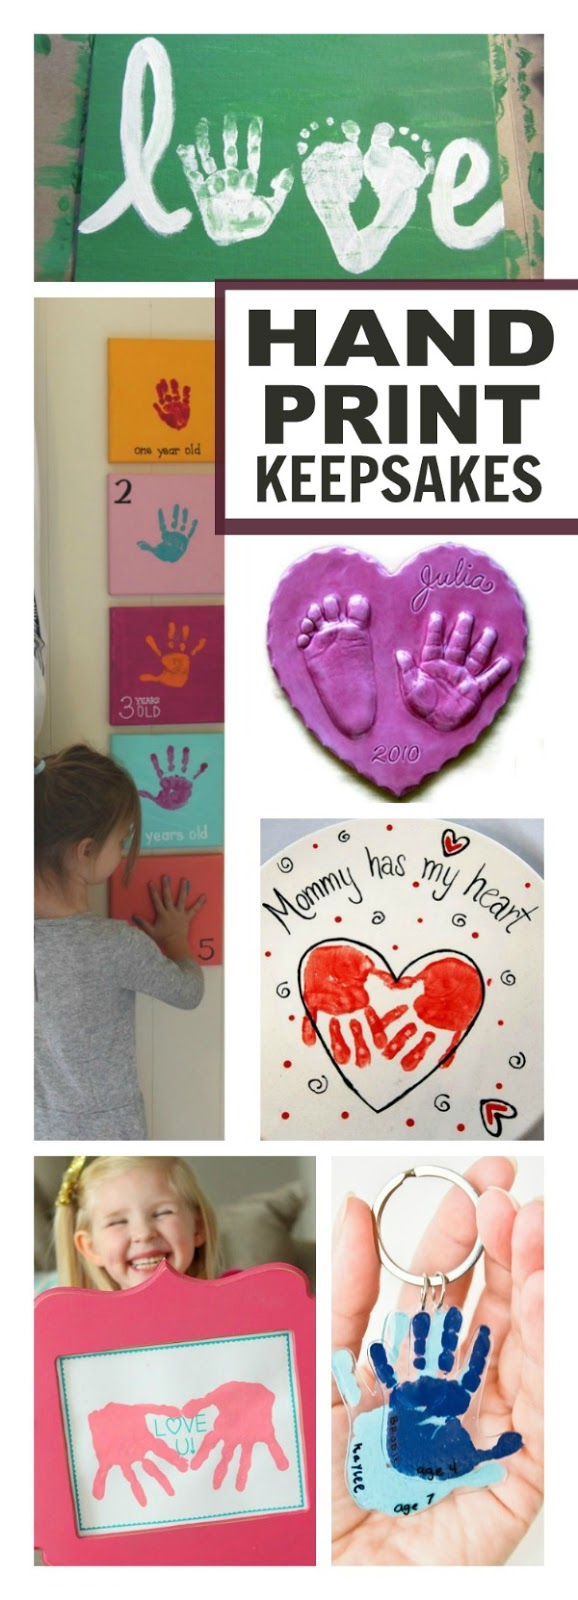 24 HANDPRINT KEEPSAKES YOU WILL LOVE - these make great gifts!